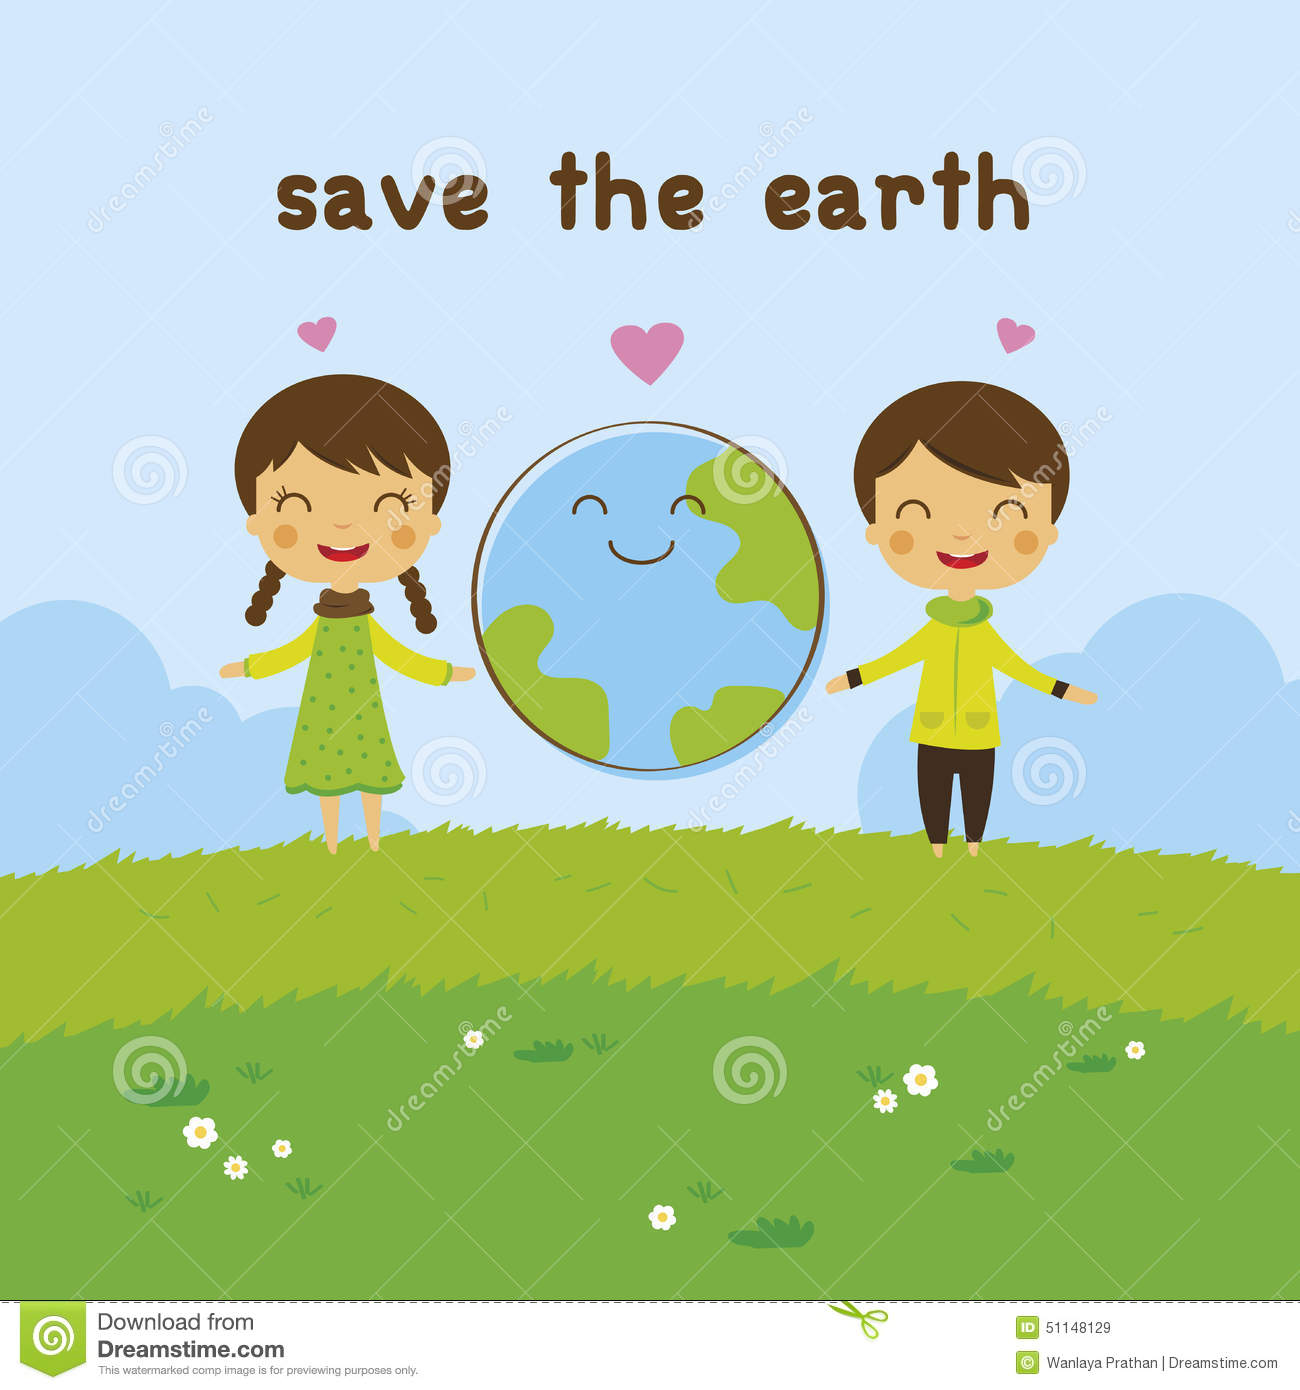 clipart save the earth - photo #28